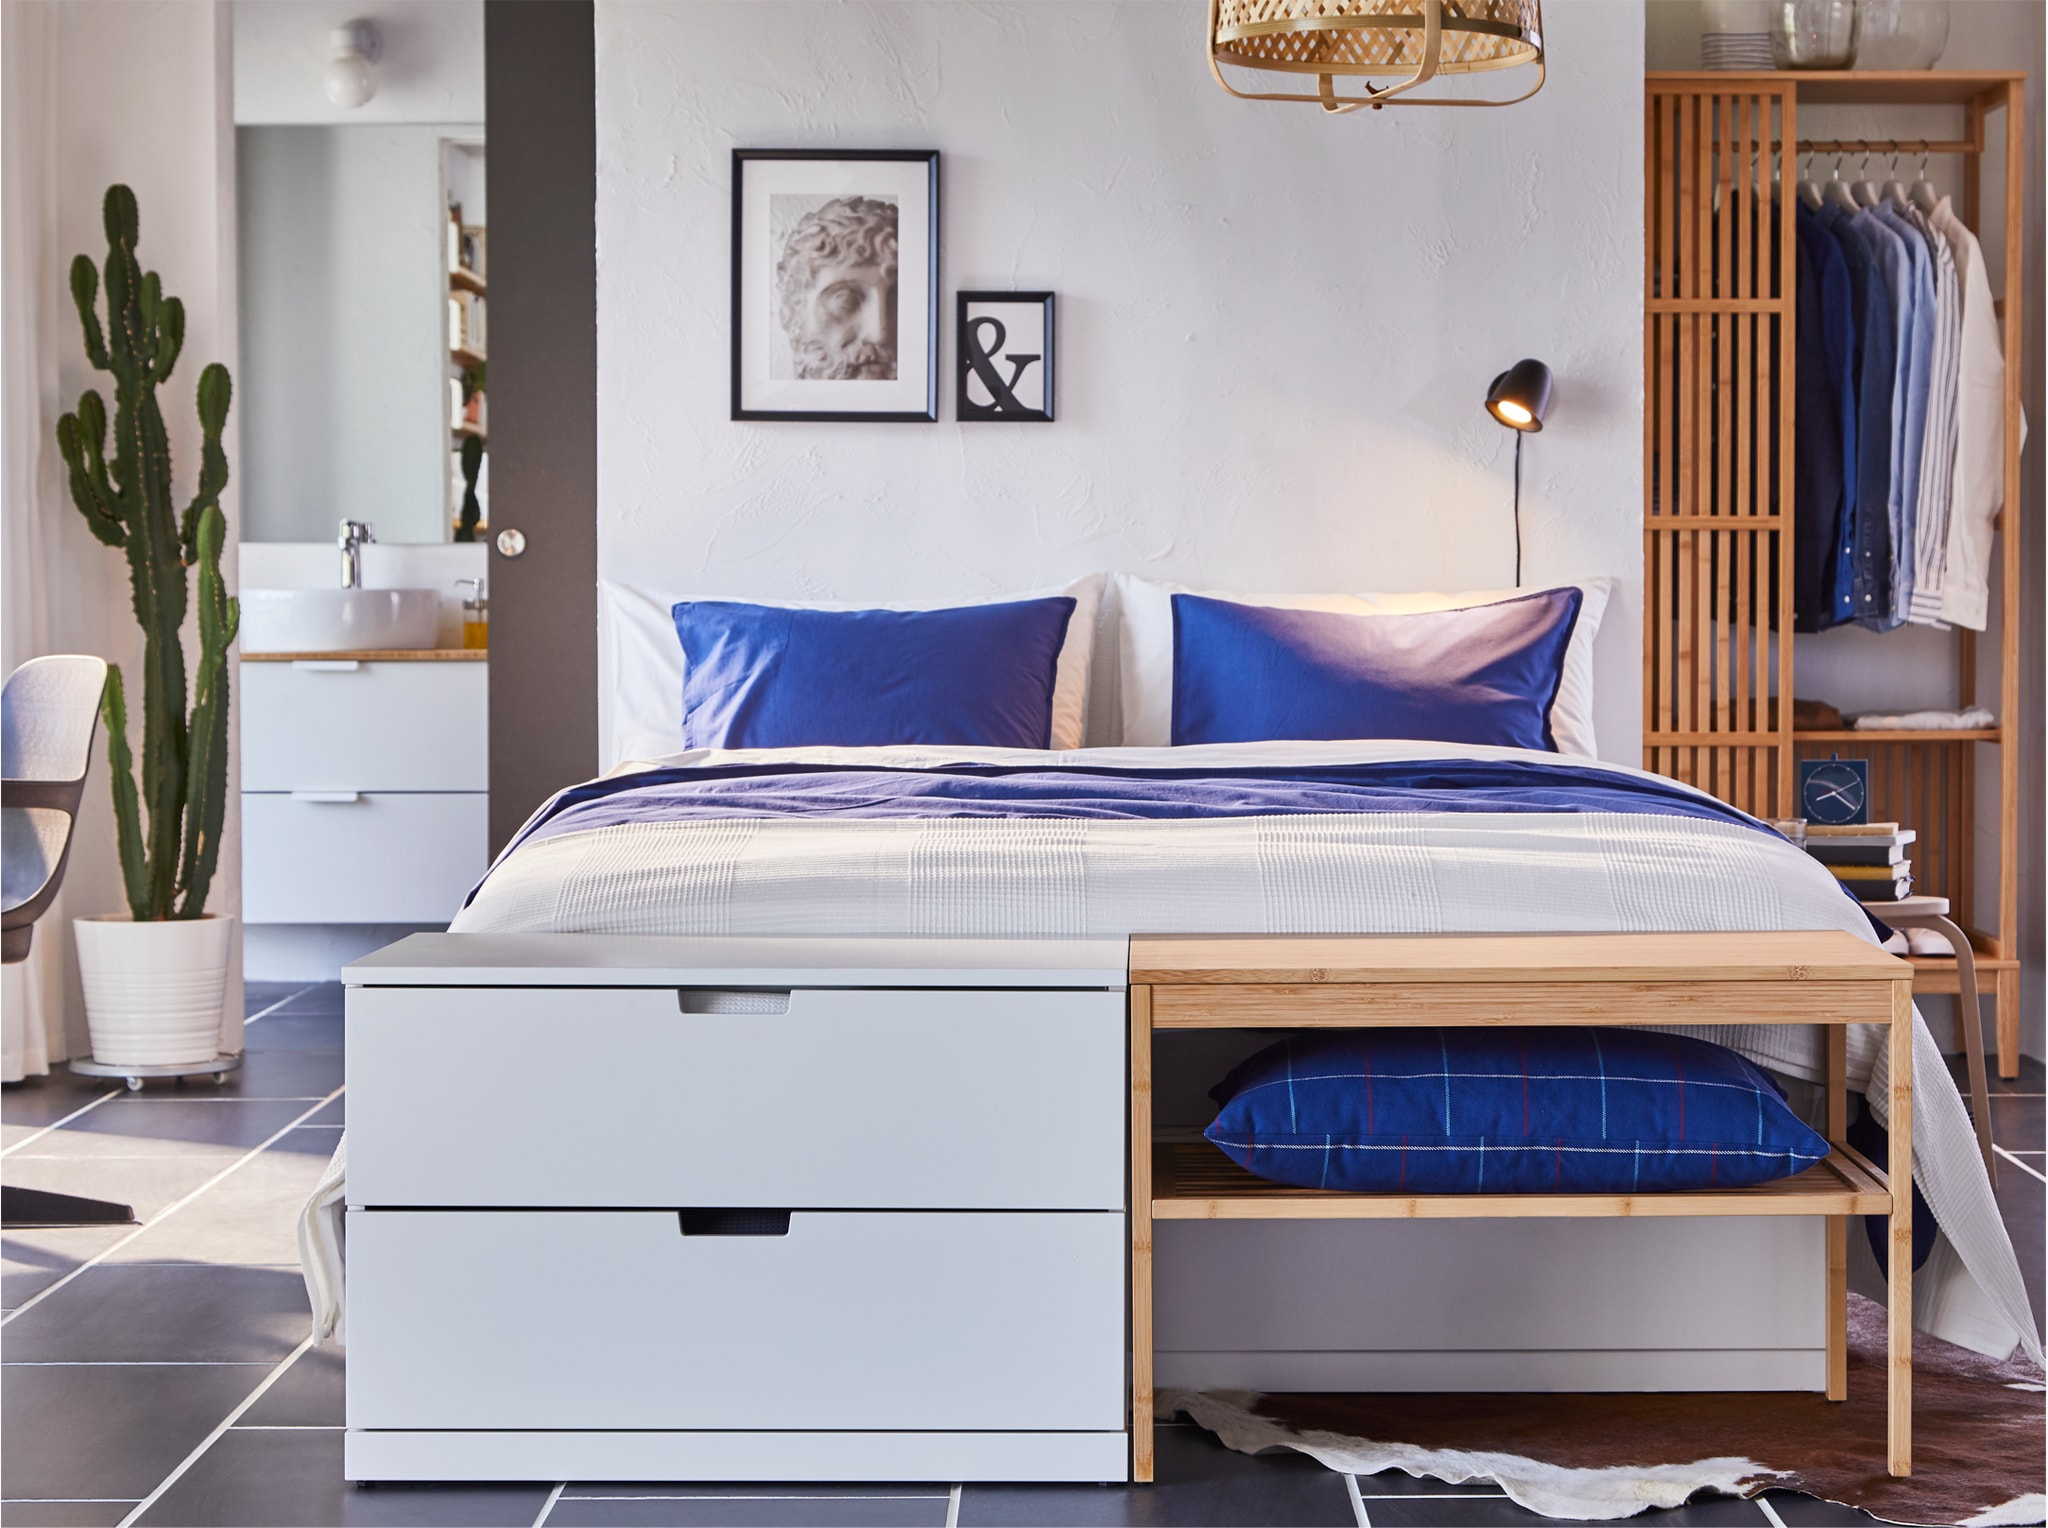 Bed with NORDLI chest of drawers and NORDKISA bench by the foot end. They have the same height and create a streamlined look.